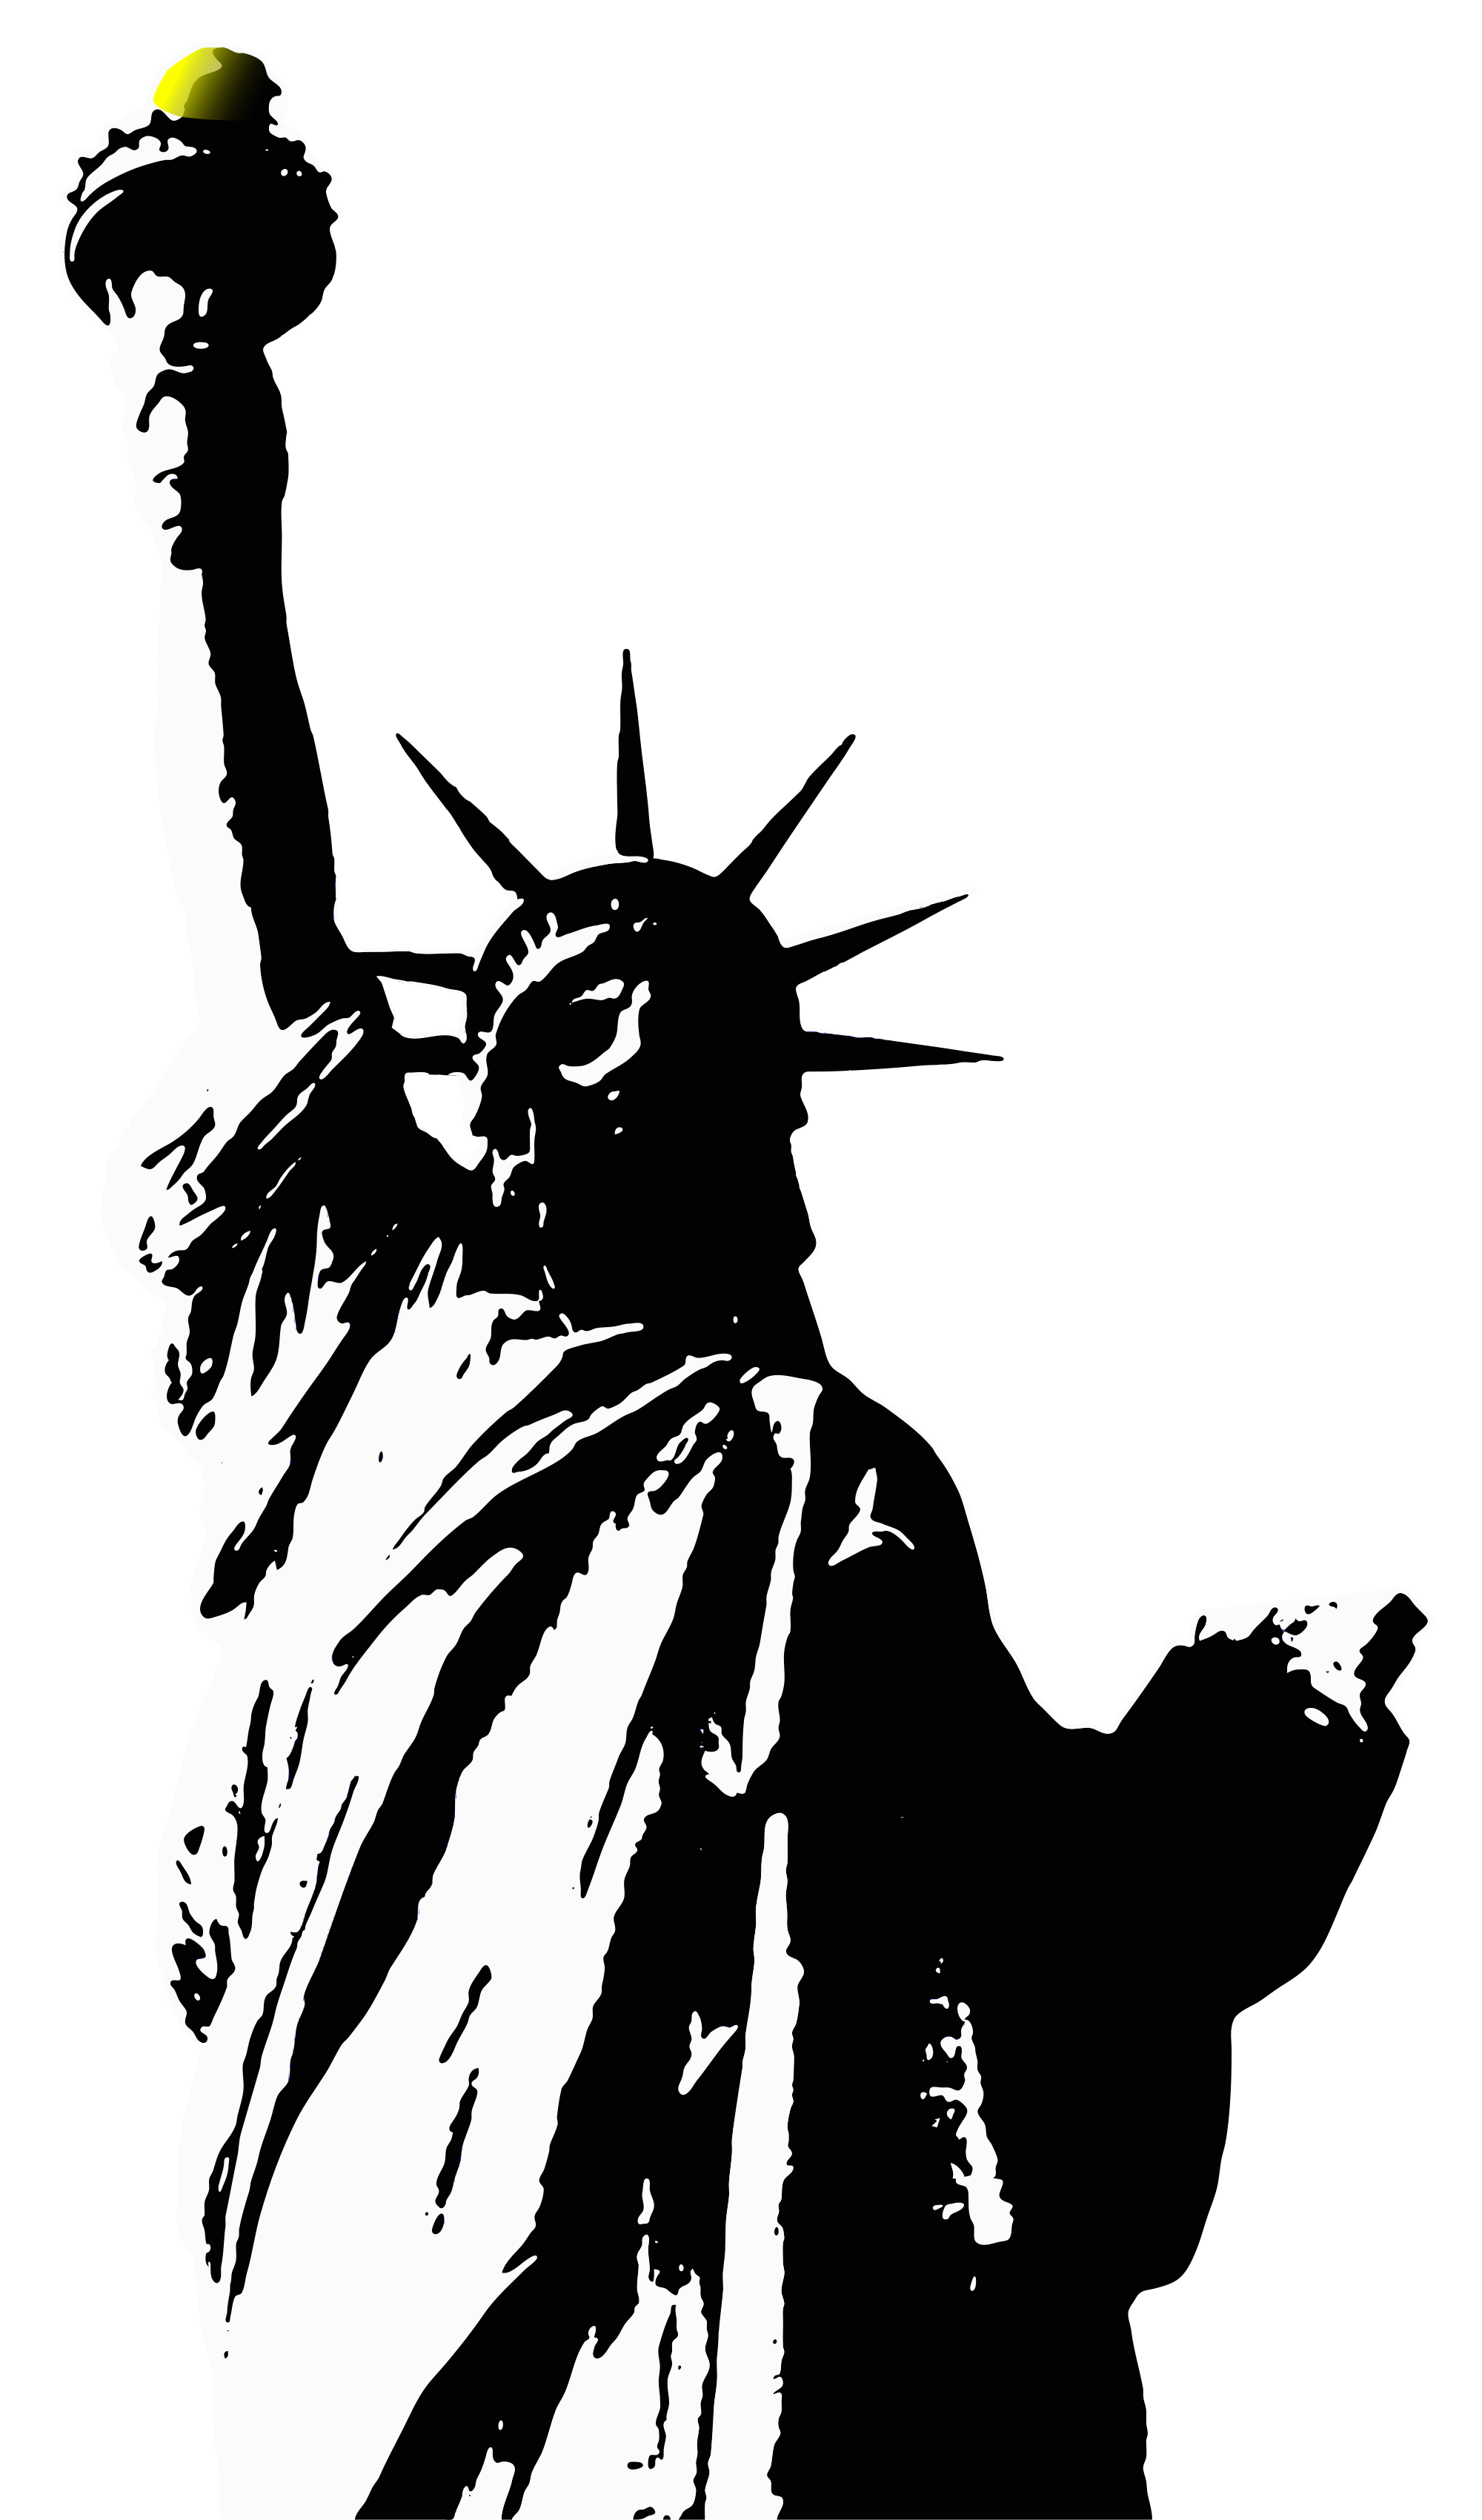 Virginia monument clipart clip art library Pin by Hopeless on Clipart | Statue of liberty, Statue, Liberty island clip art library